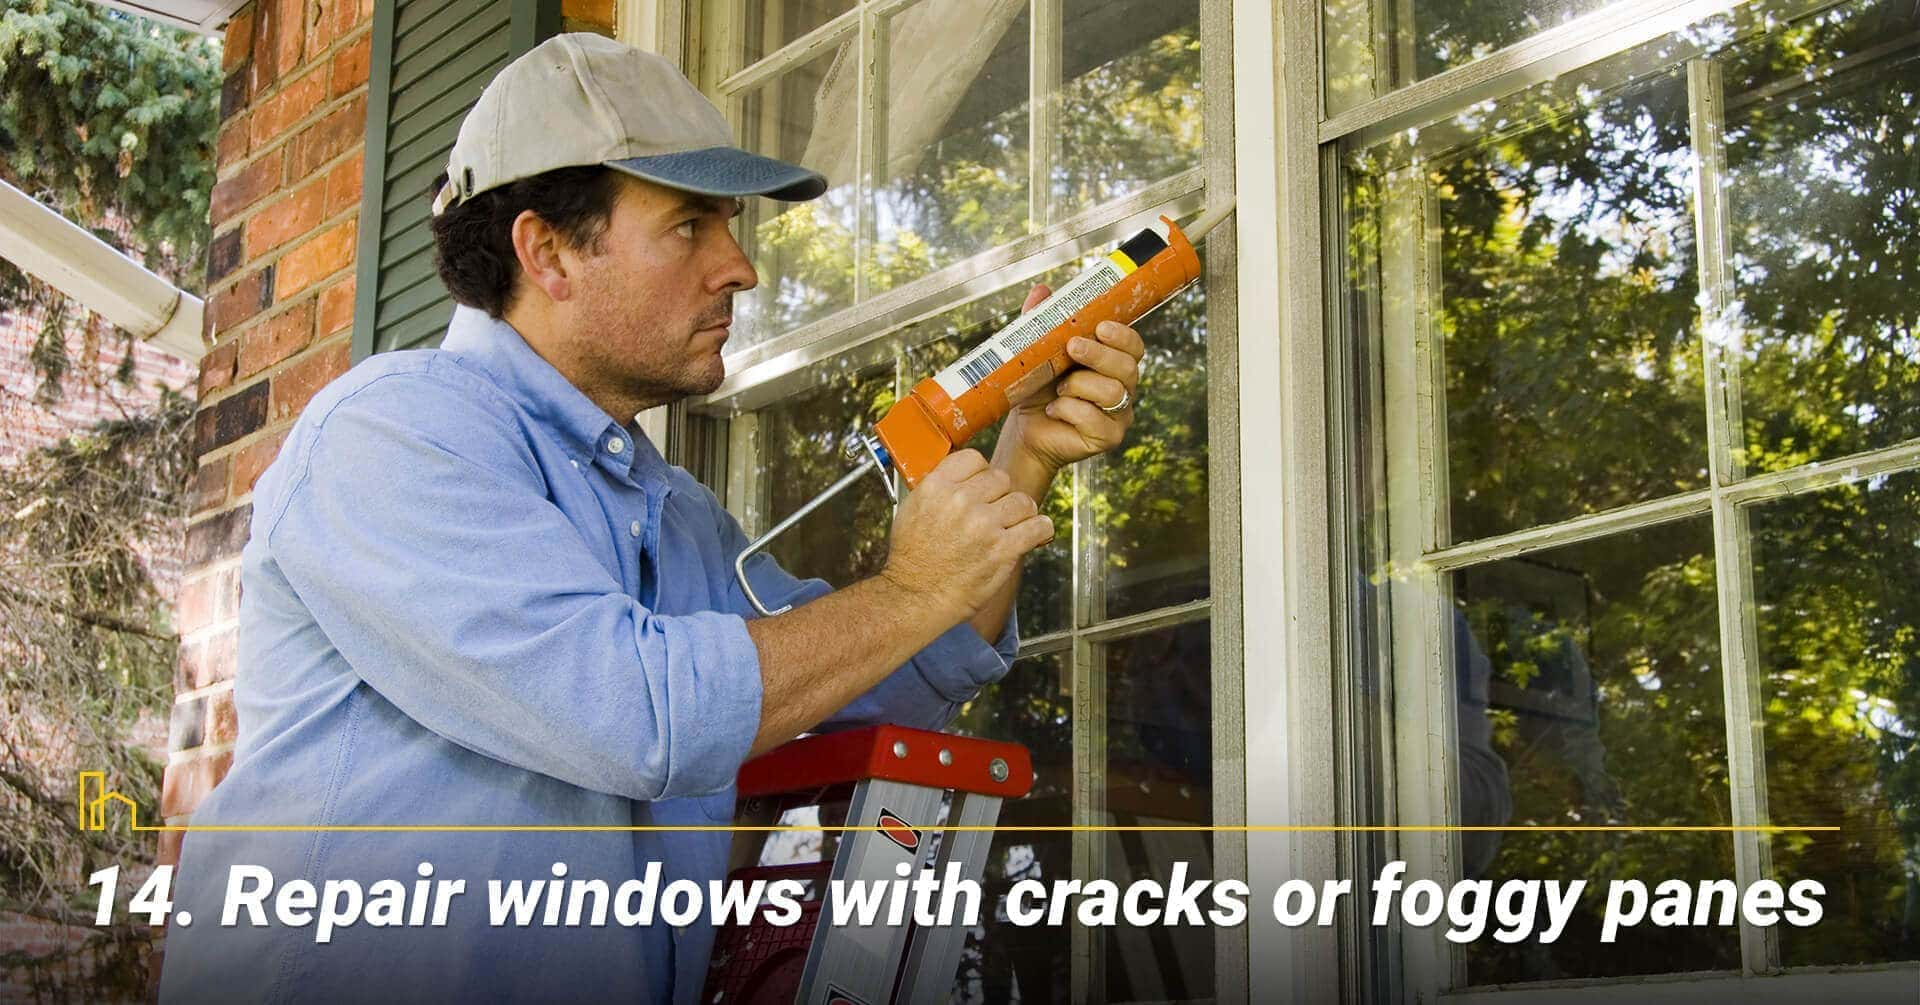 Repair windows with cracks or foggy panes, maintain windows